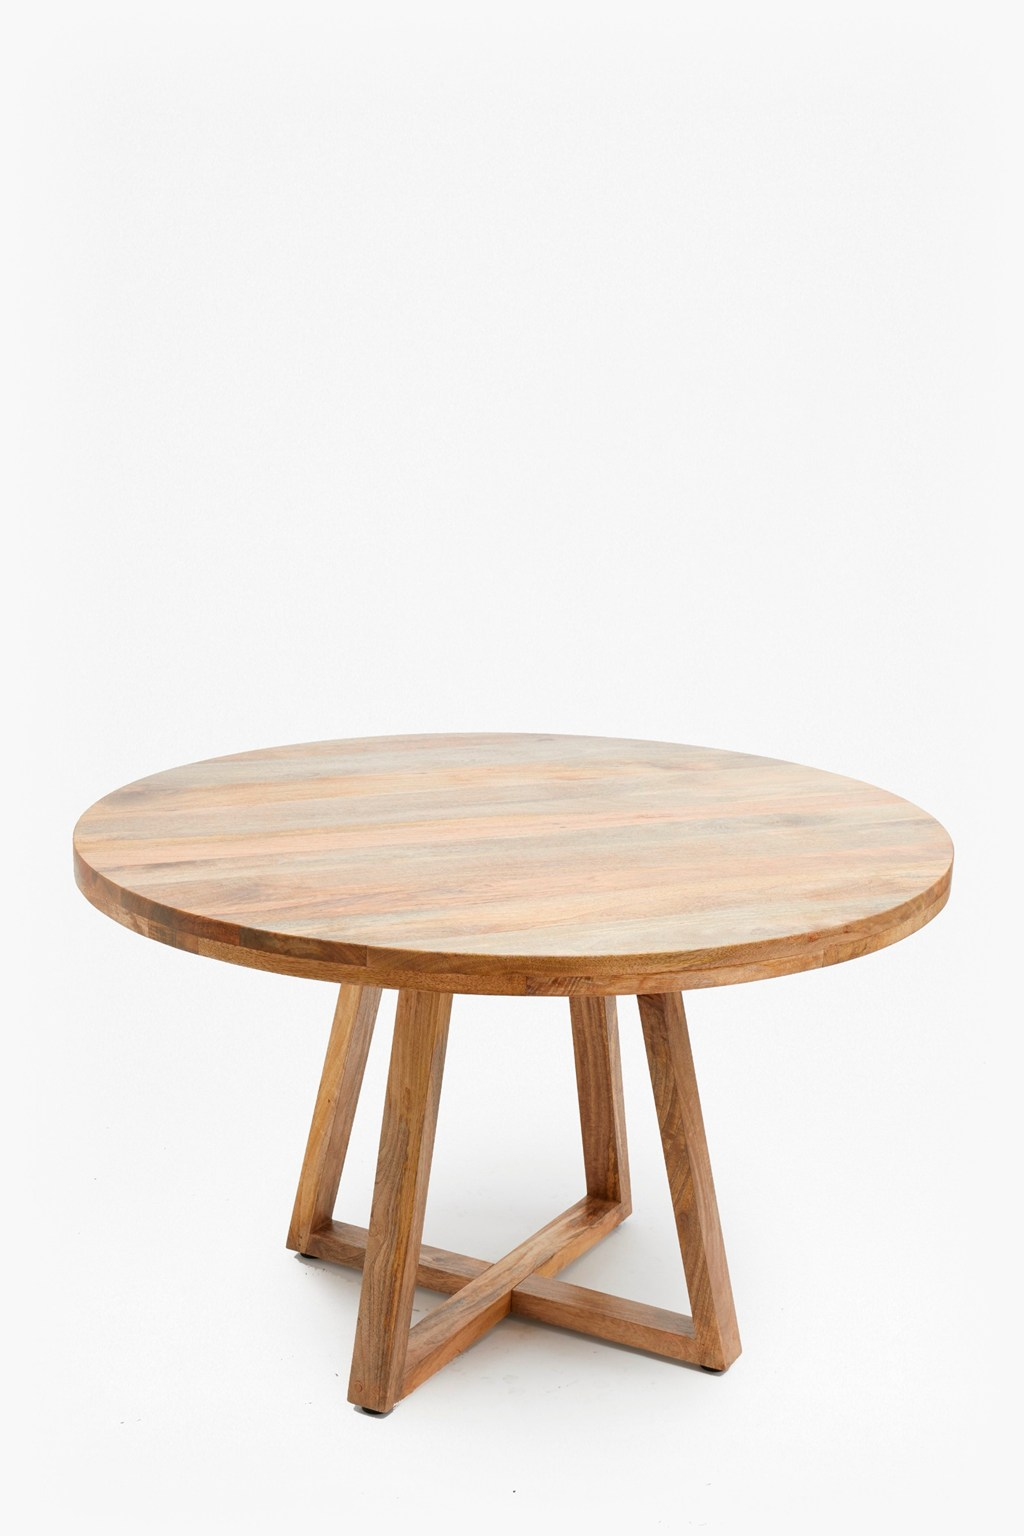 Wood Round Dining Table: Round Wooden Dining Table